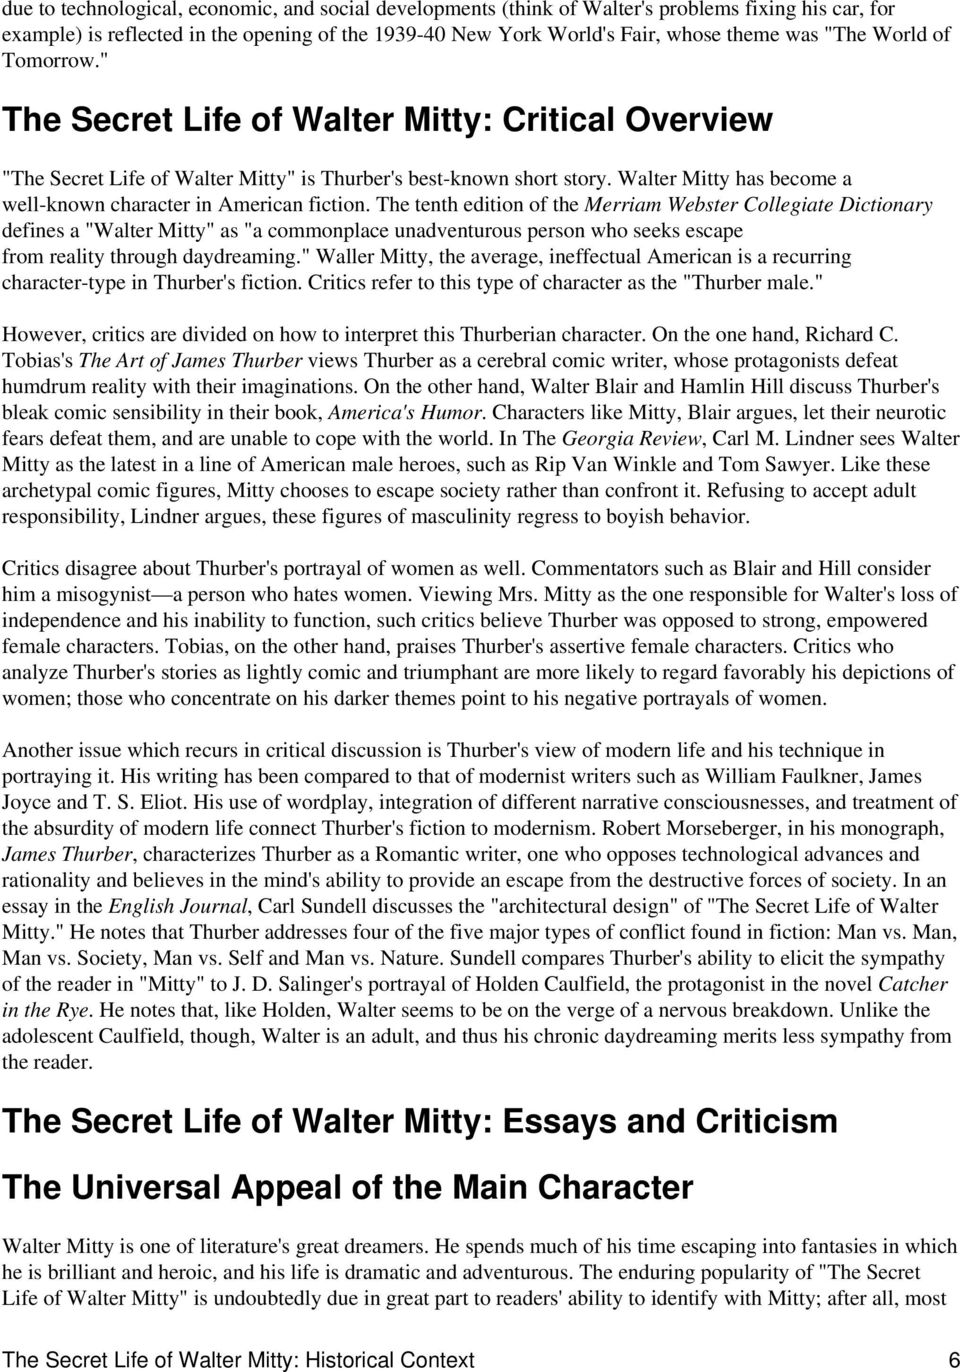 Essay For English Language Walter Mitty Has Become A Wellknown Character In American Fiction American Dream Essay Thesis also Essay On High School Experience The Secret Life Of Walter Mitty  Pdf English Essays Book